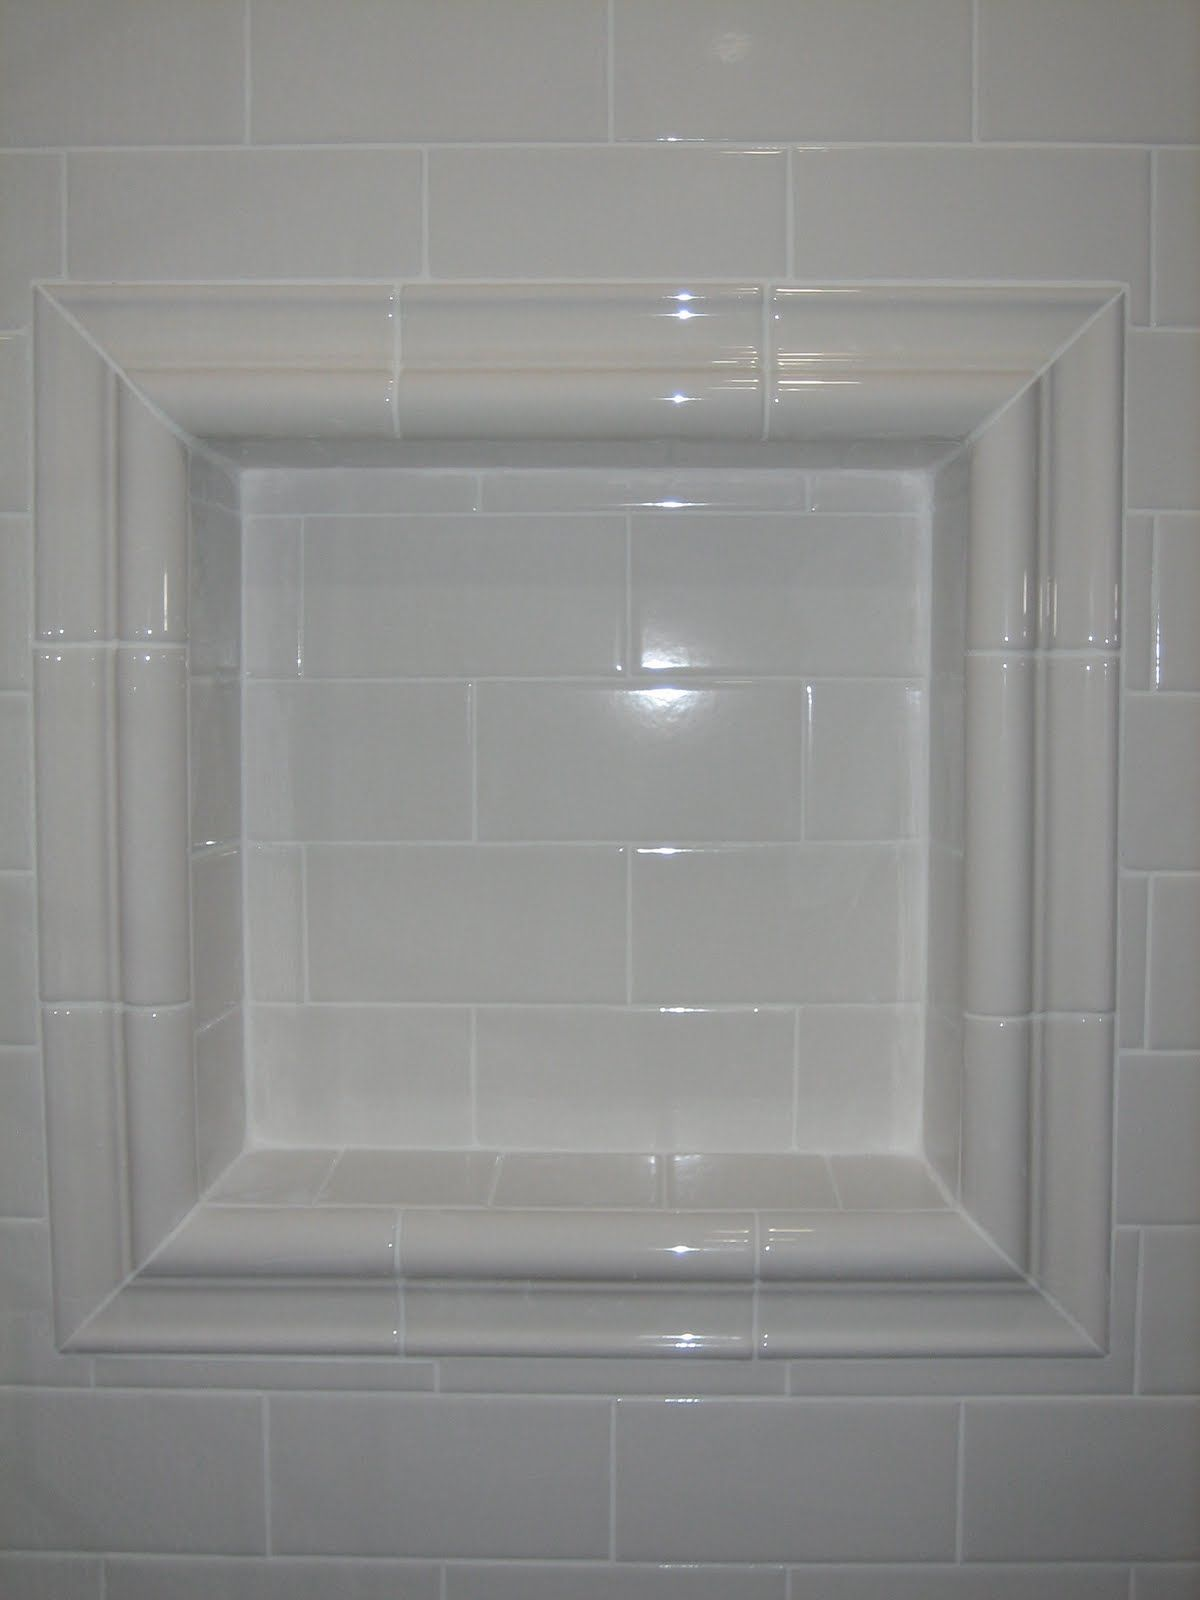 Subway tile shower shelf bullnose pieces projects to try subway tile shower shelf bullnose pieces dailygadgetfo Image collections